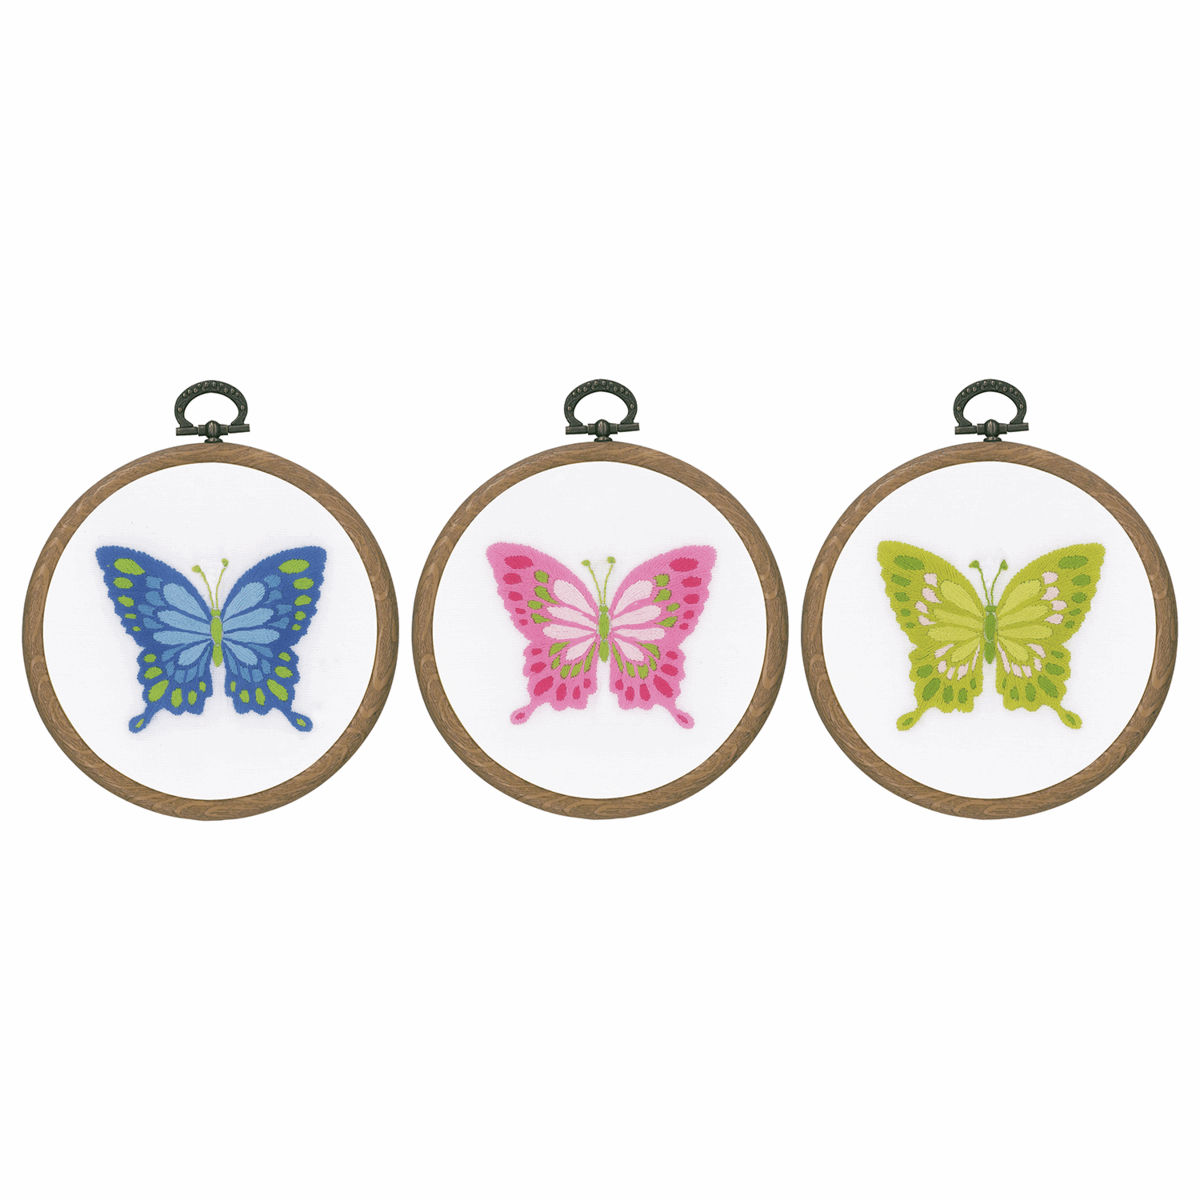 Picture of Embroidery Kit with Ring: Butterflies: Set of 3